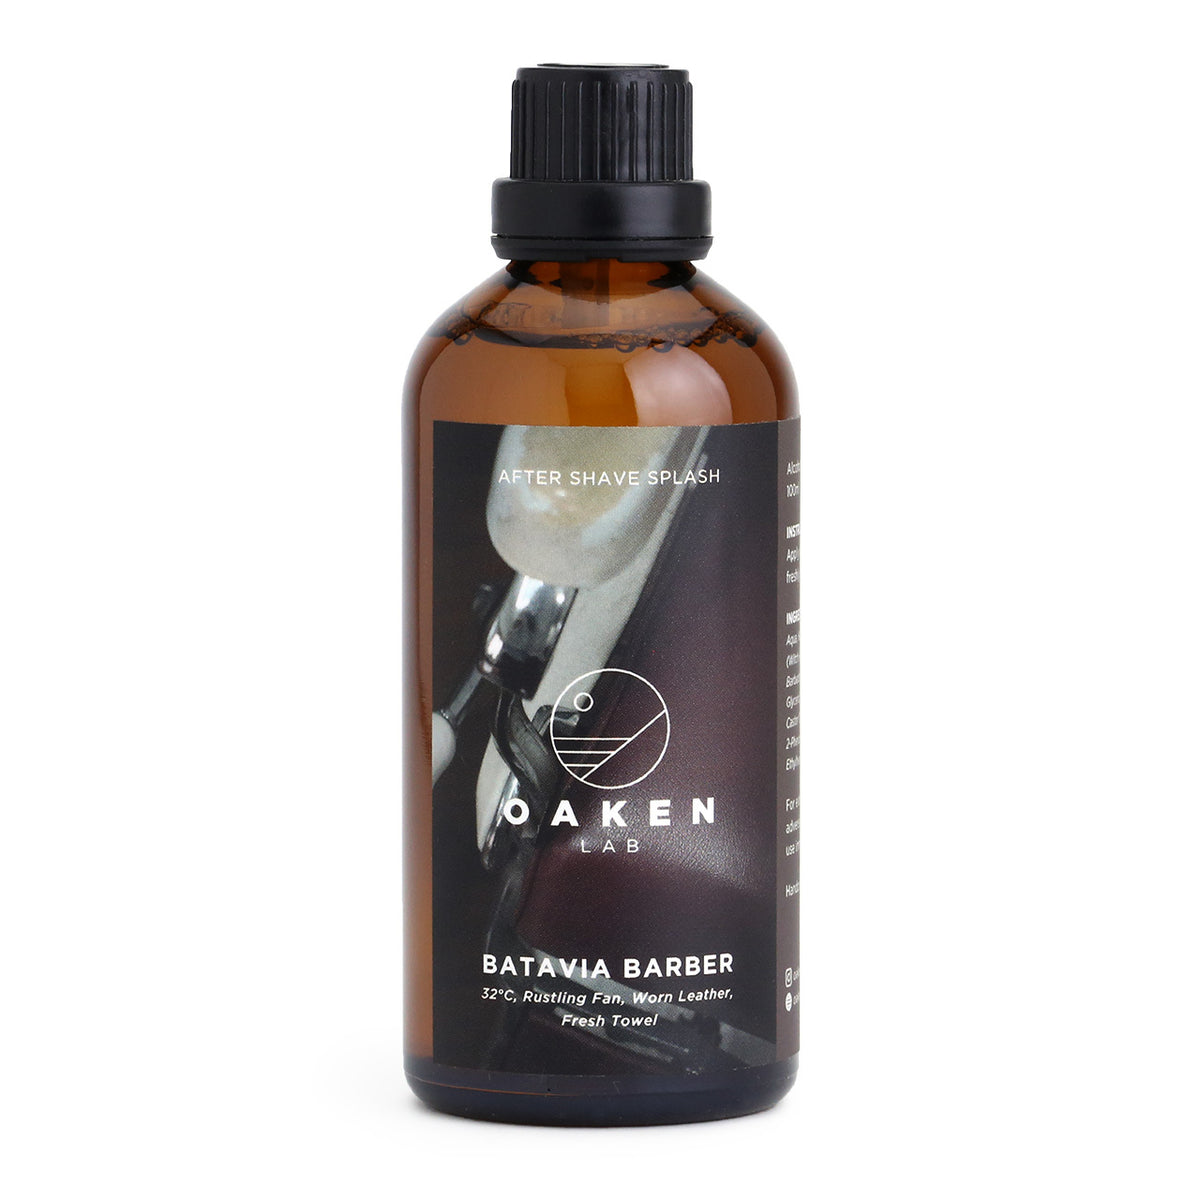 Oaken Lab Aftershave Splash - Batavia Barber